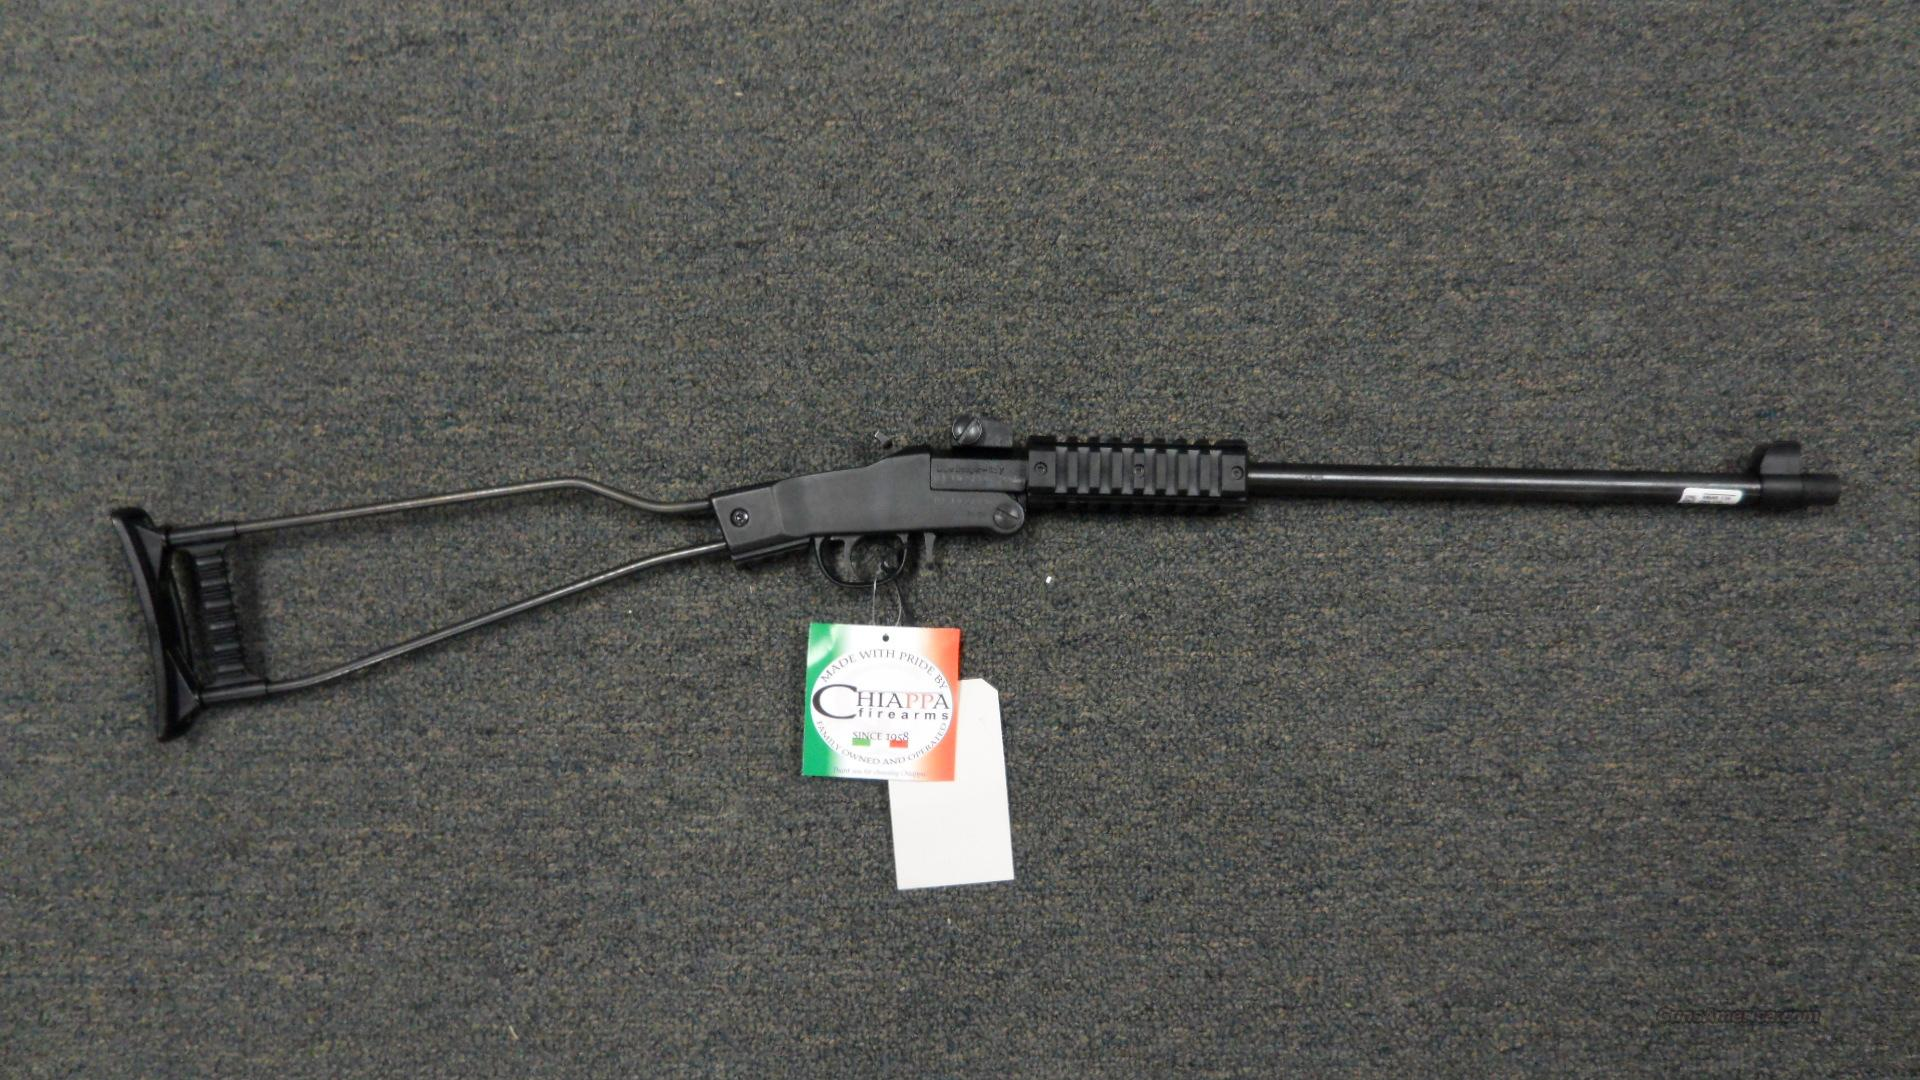 Chiappa Little Badger 22mag  Guns > Rifles > Chiappa / Armi Sport Rifles > .22 Cal Rifles